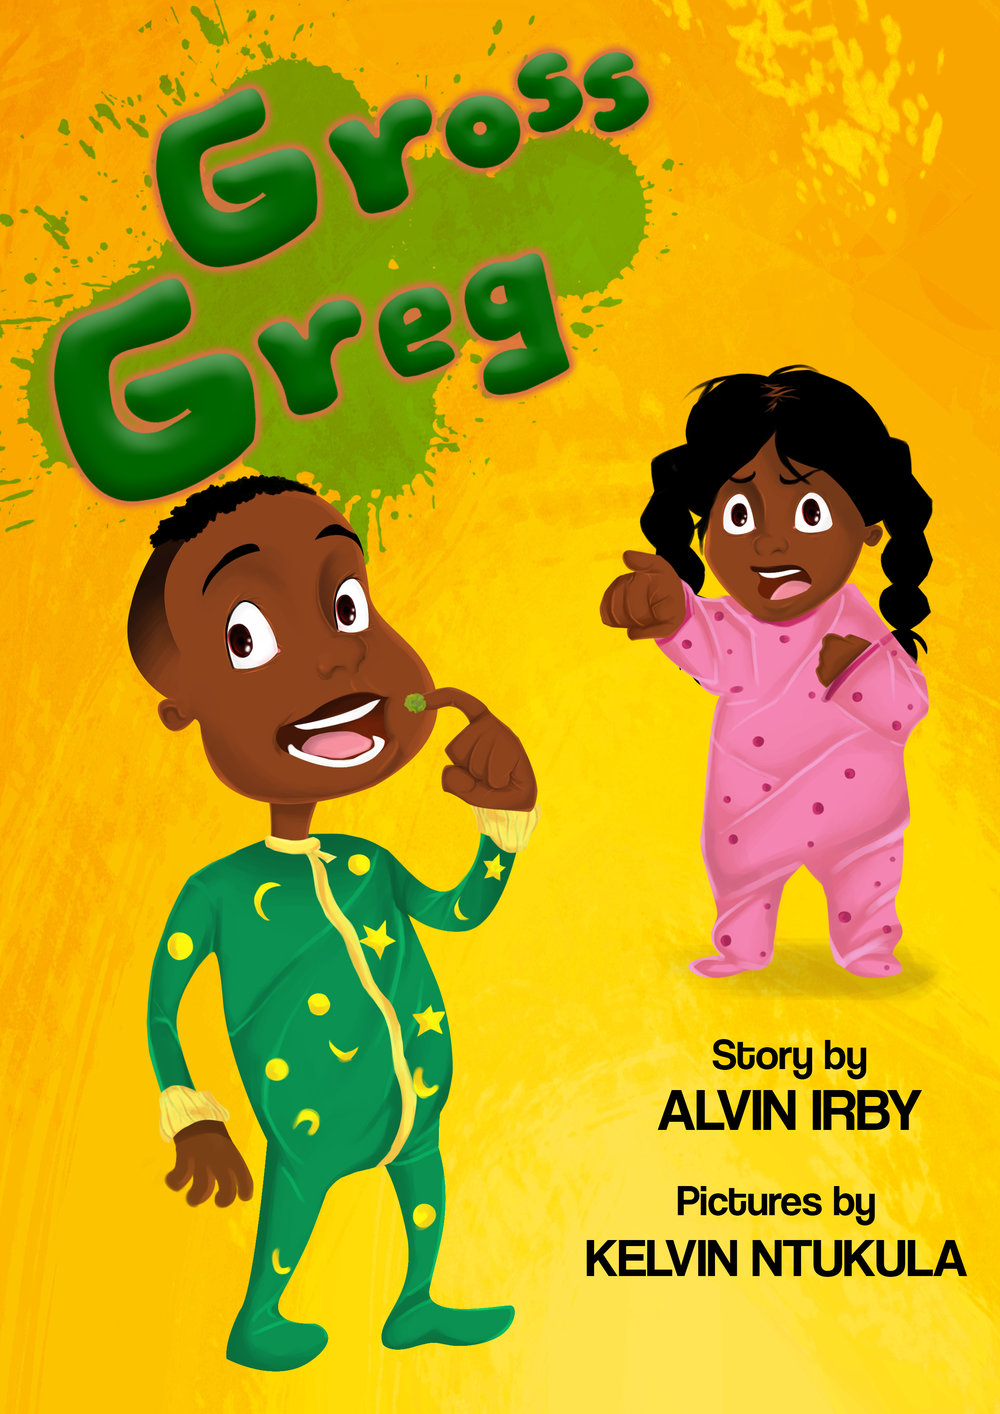 Gross Greg Book Cover